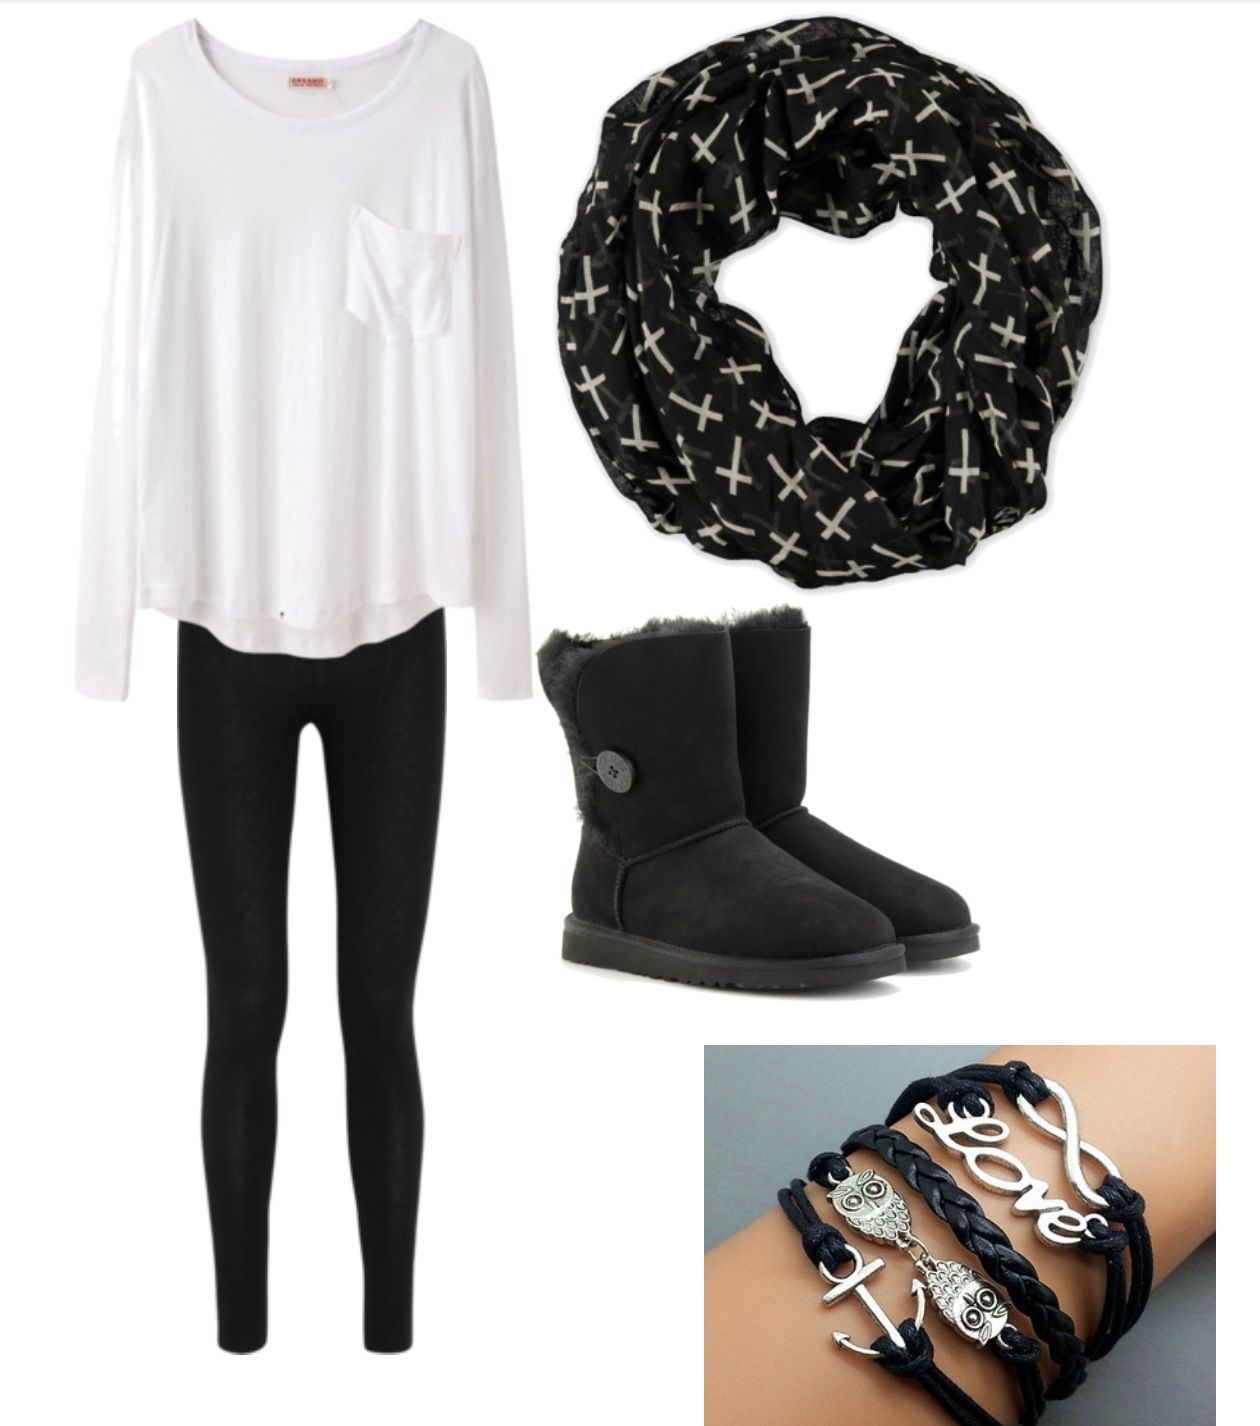 f7ea5edd77923 Cute Outfits With Uggs And Leggings